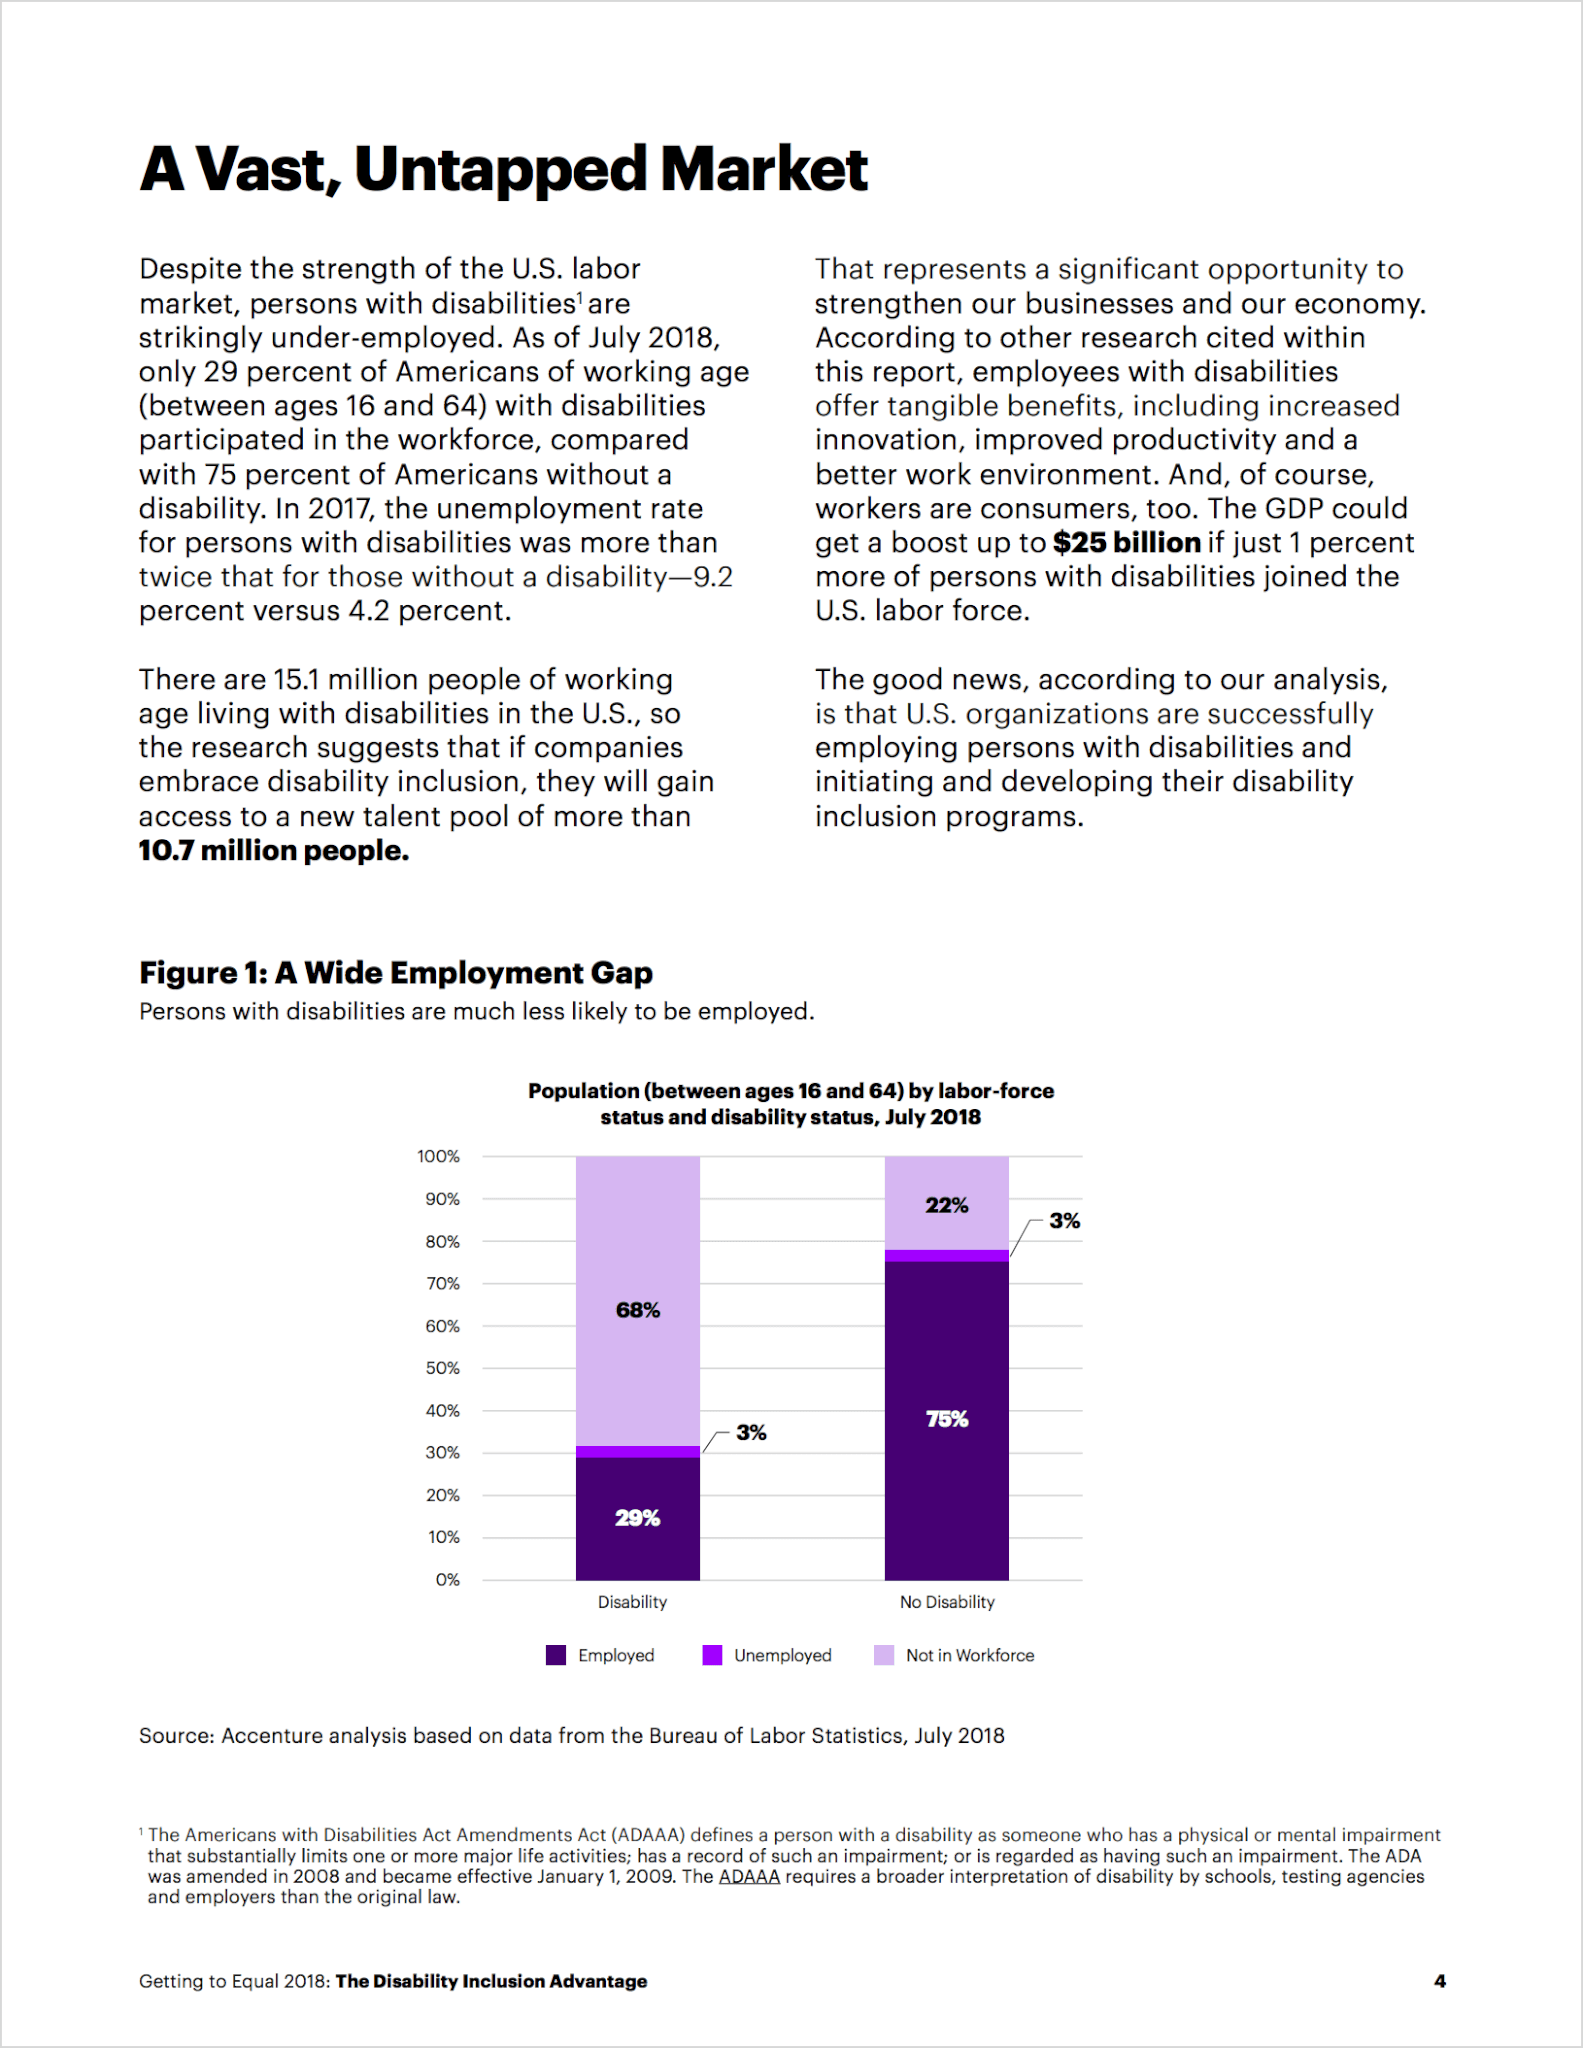 accenture page 3